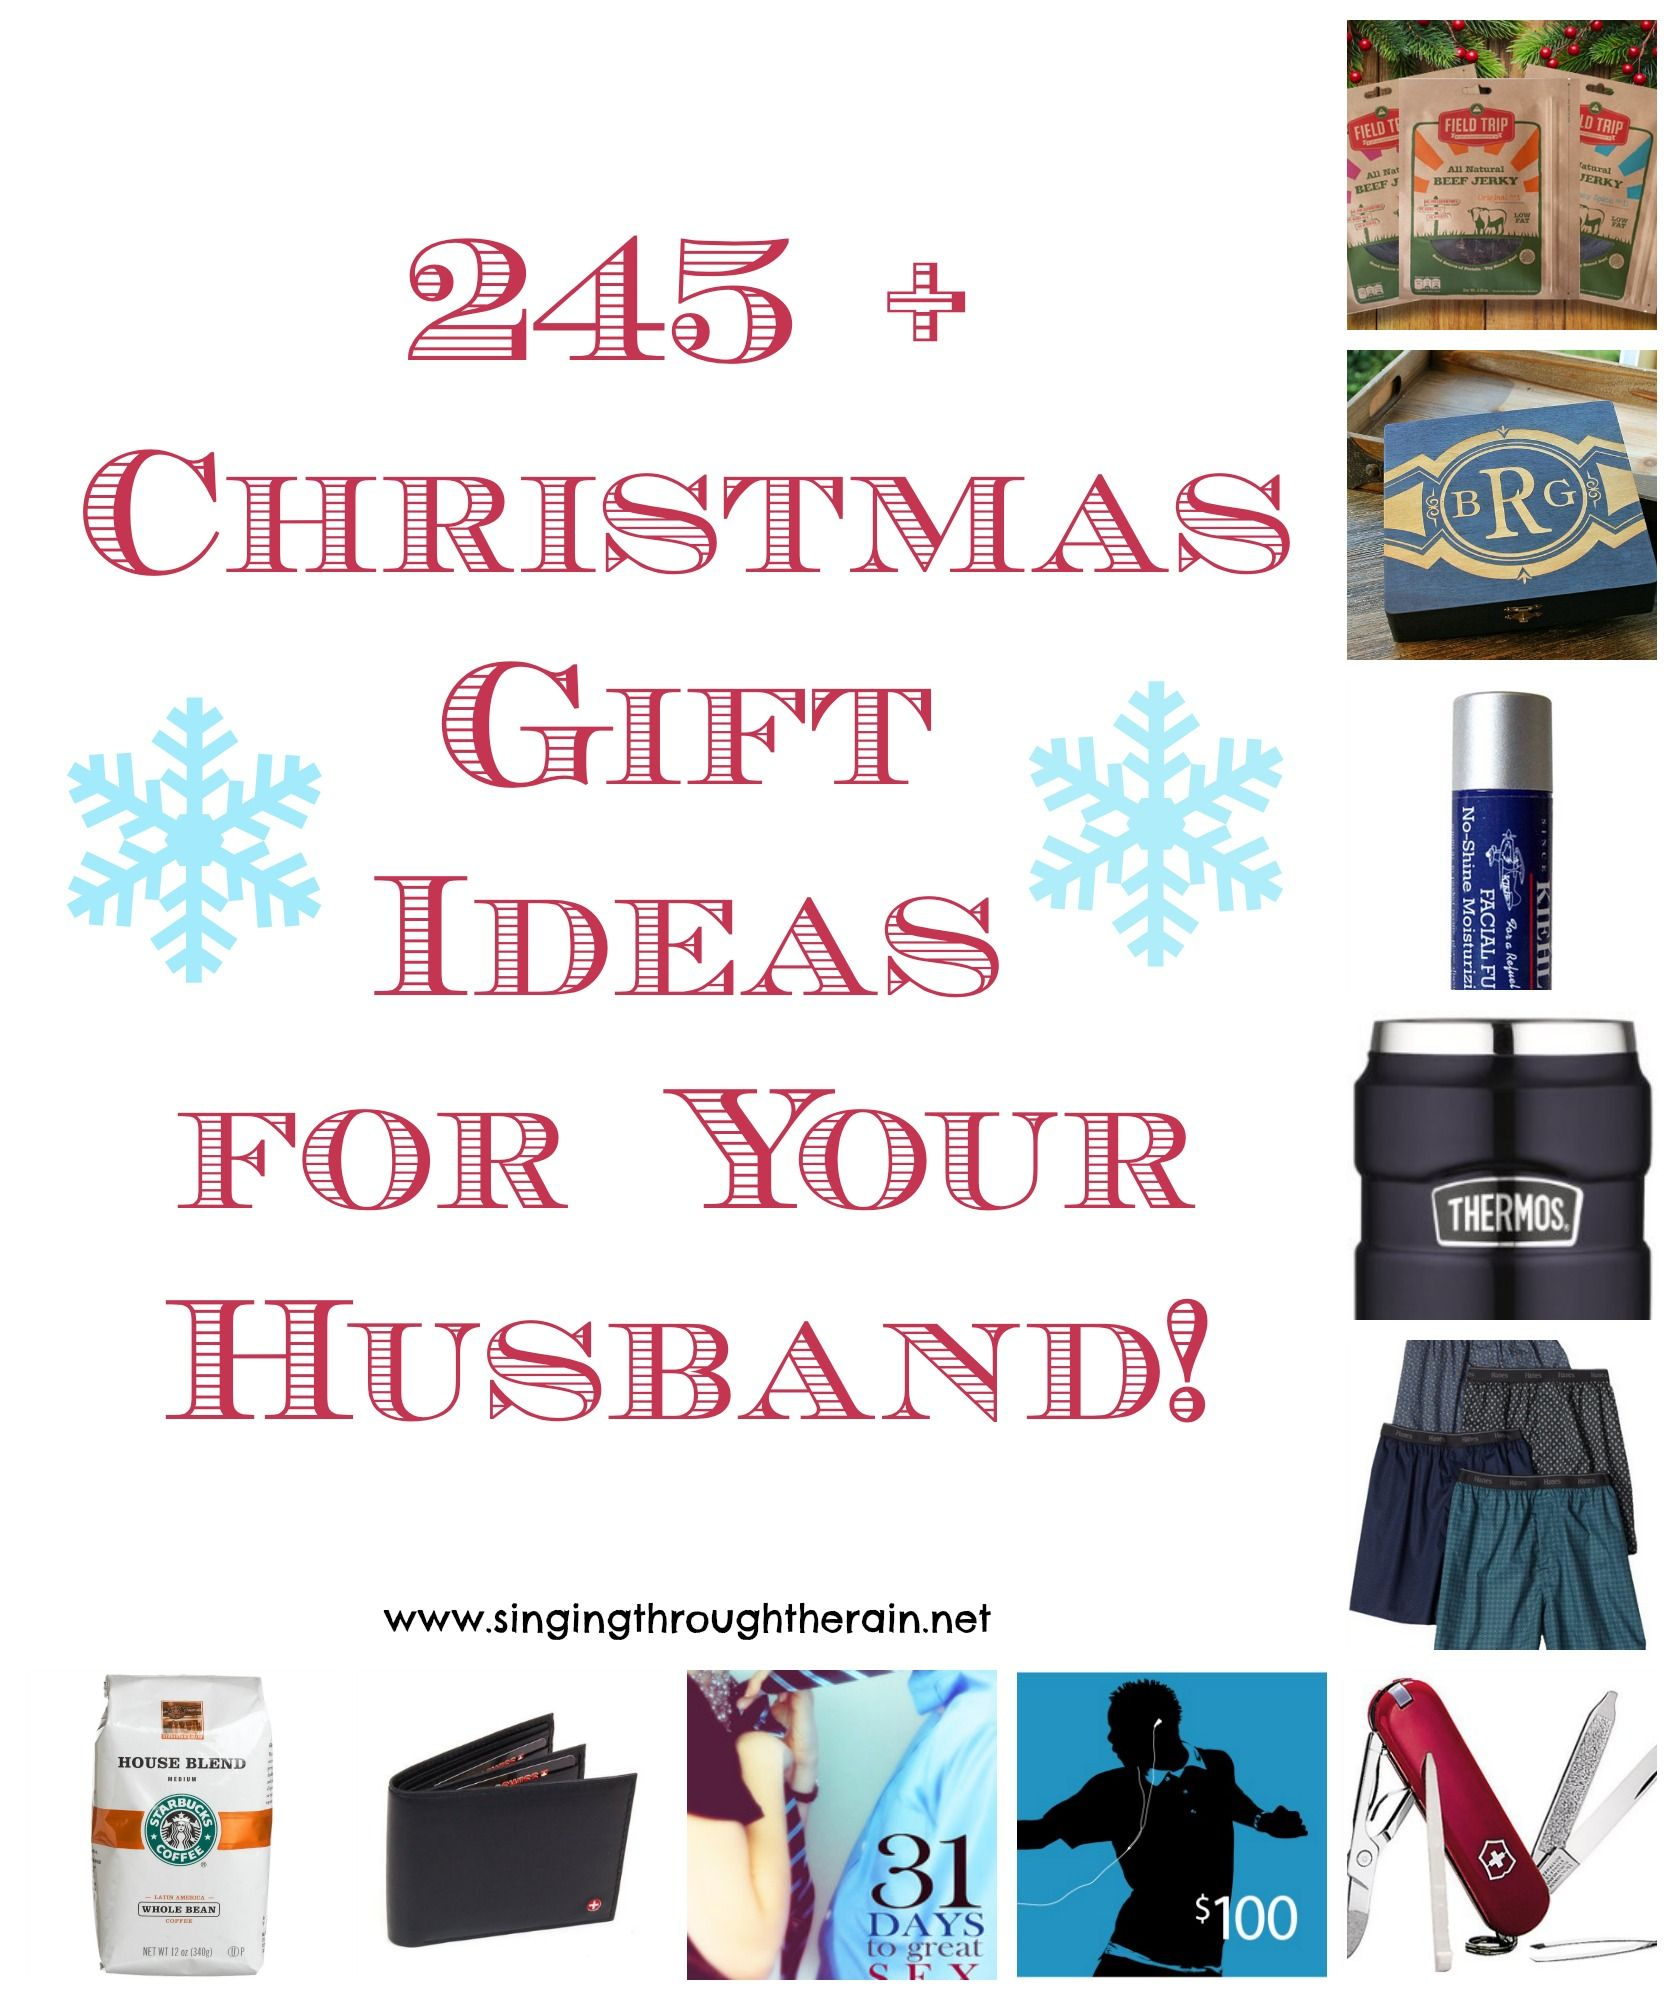 Christmas Gifts Ideas For Husband.245 Christmas Gift Ideas For Your Husband Encouragement